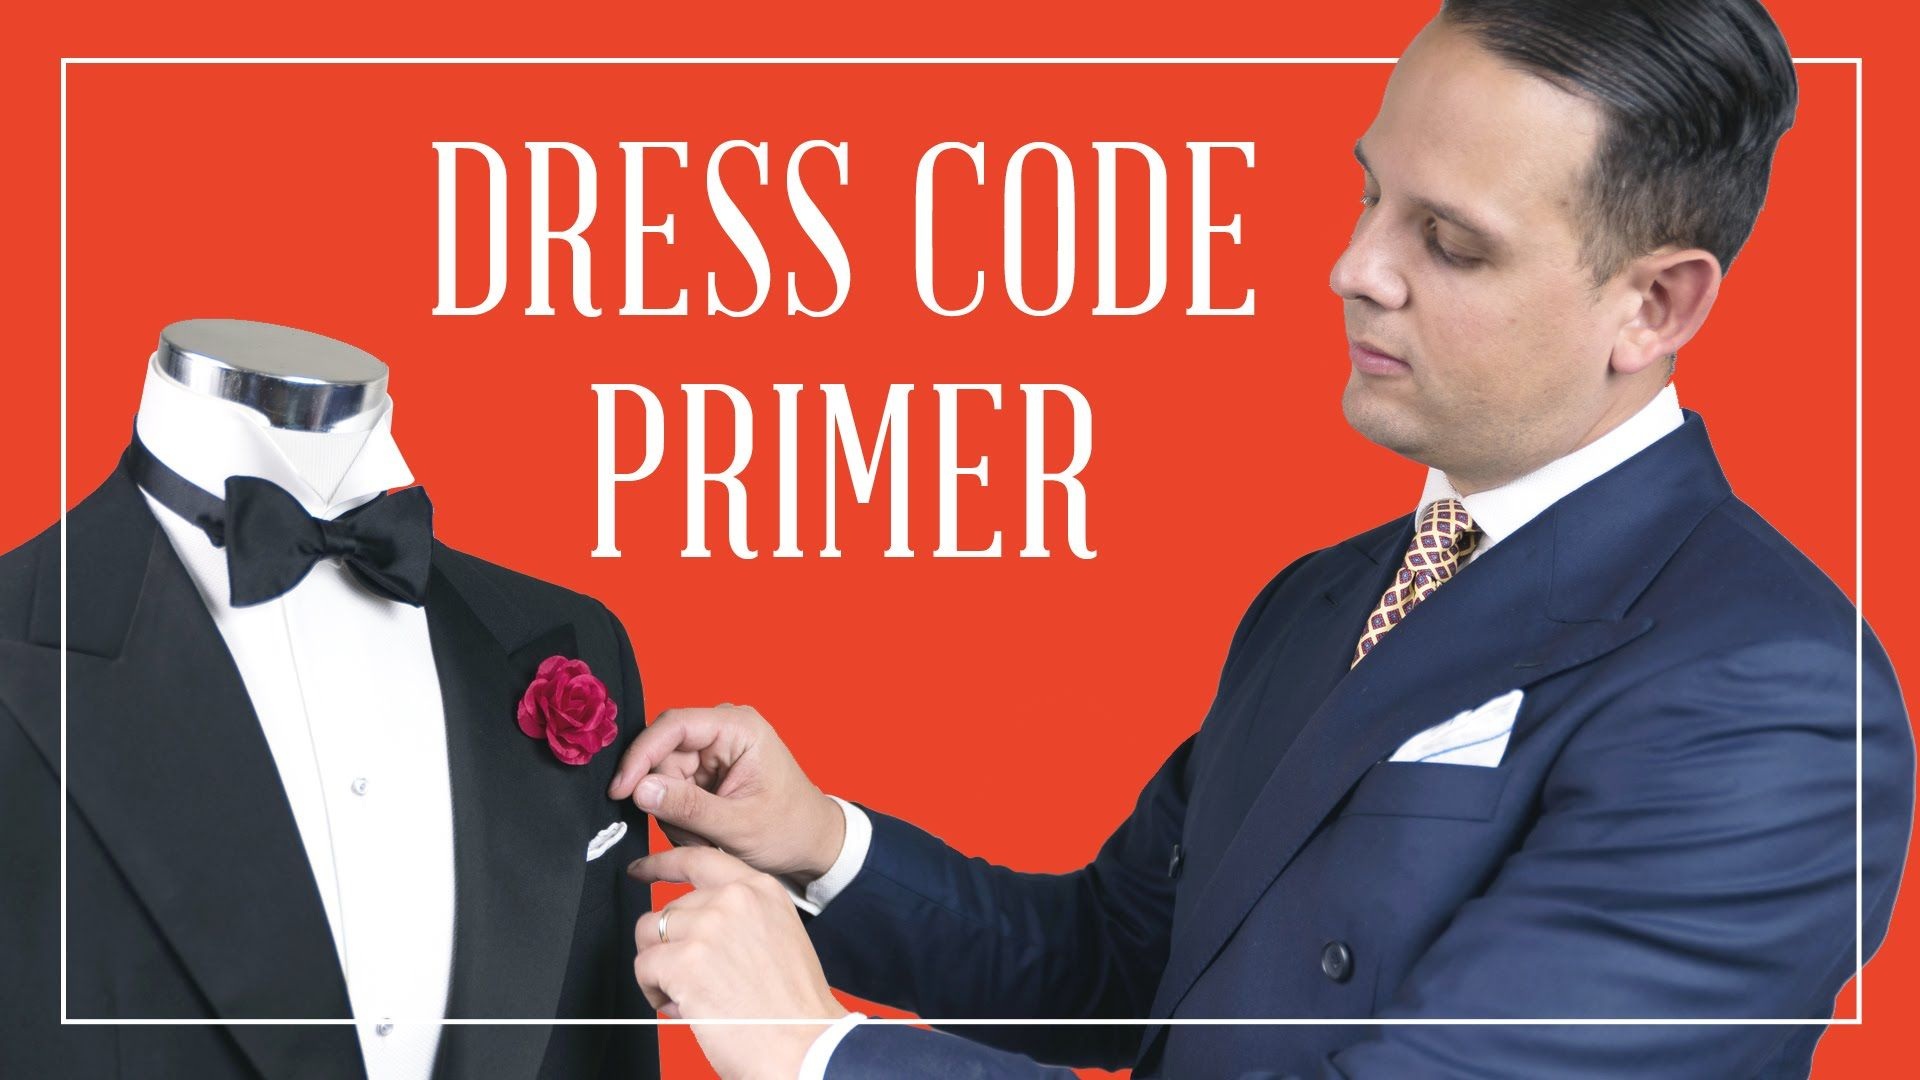 Dress Code Primer - What to Wear for Black Tie Optional, Business ...